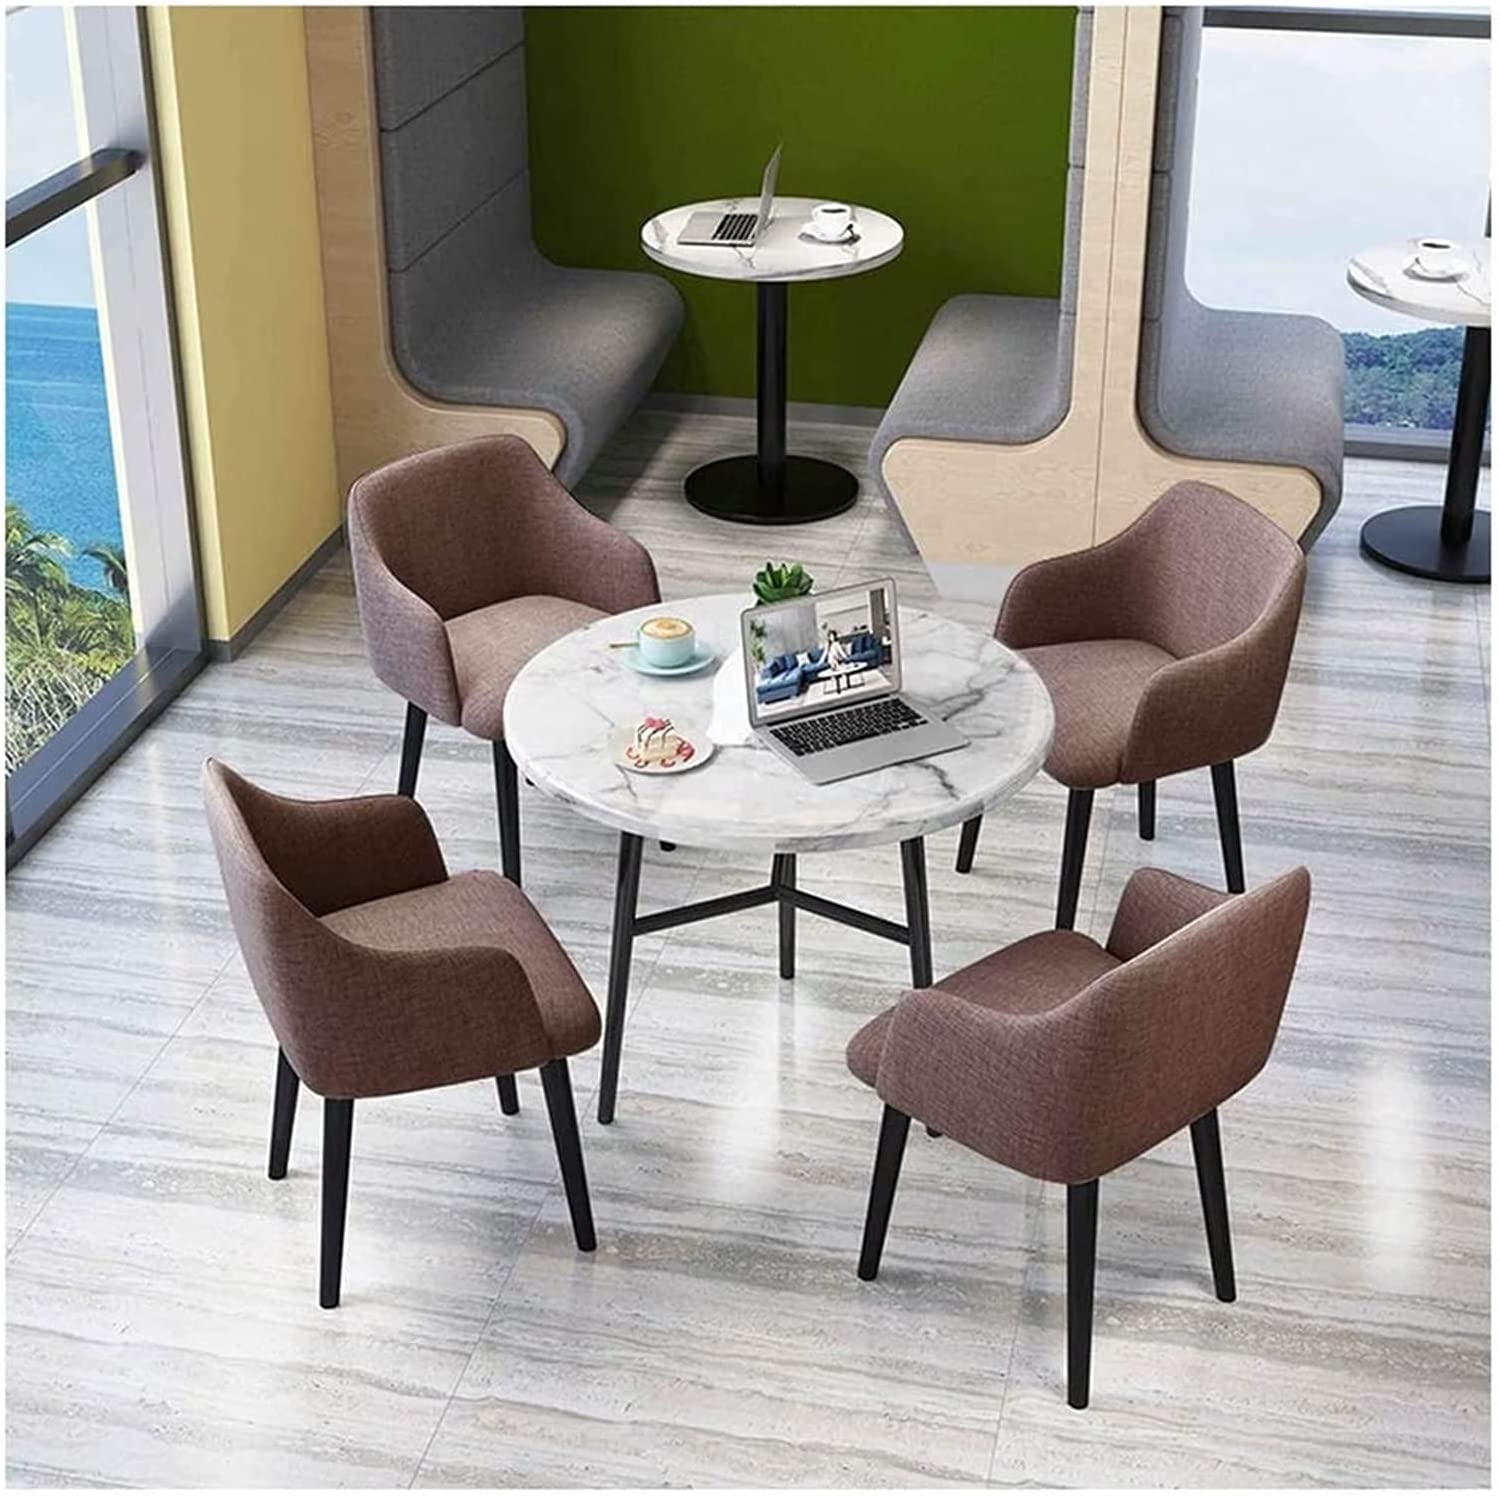 2021 new ASDDD Office Limited time cheap sale Reception Table and Set Chair